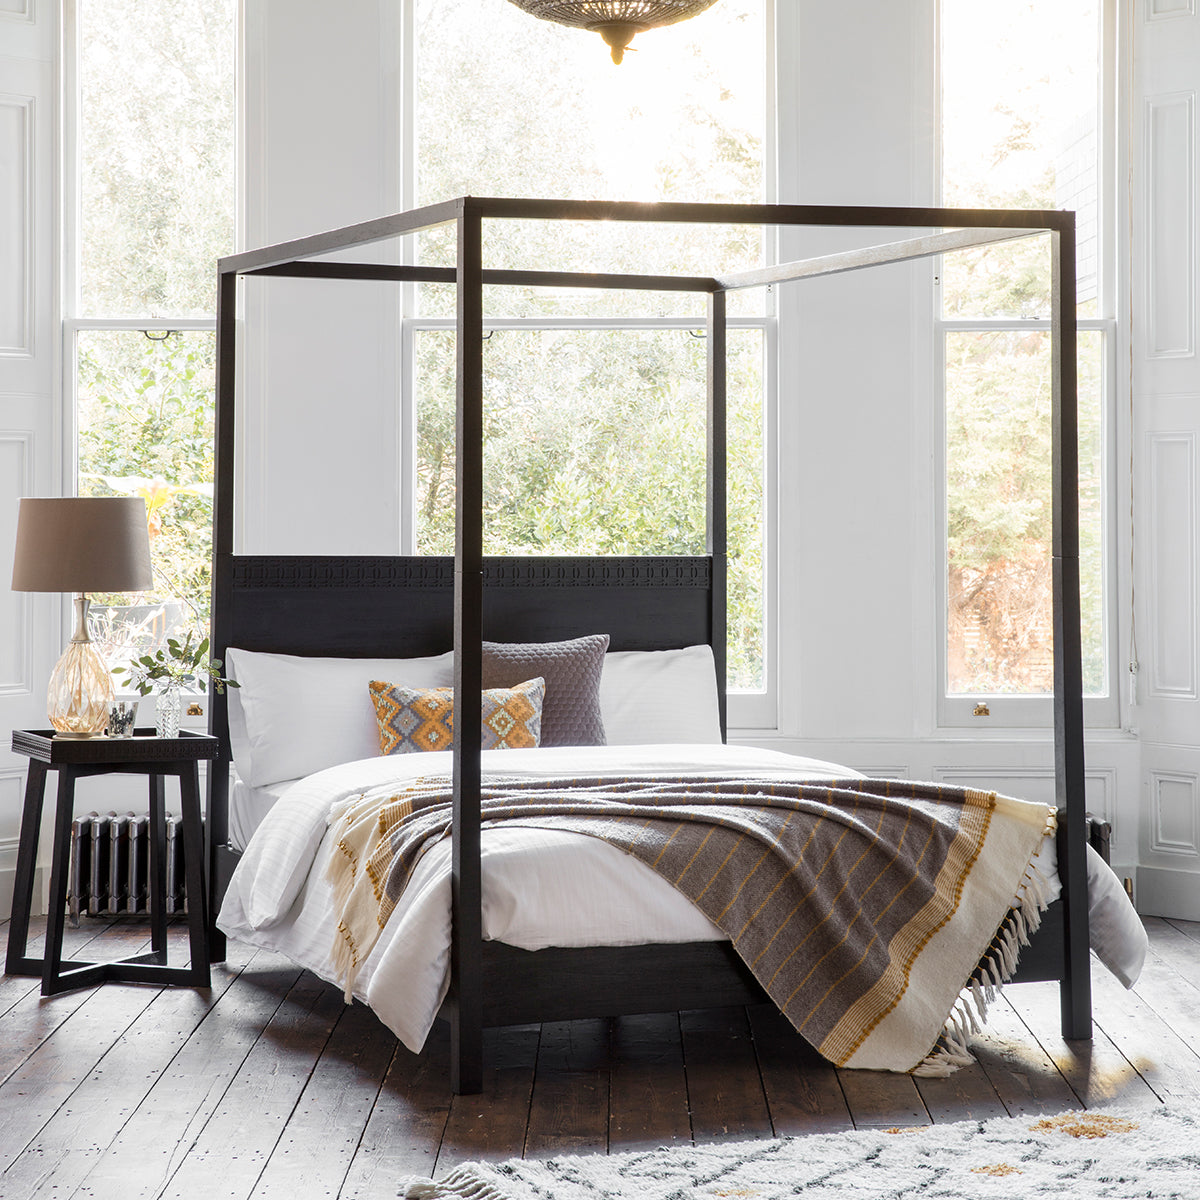 Greenwich 4 Poster King Size Bed in Dark Charcoal